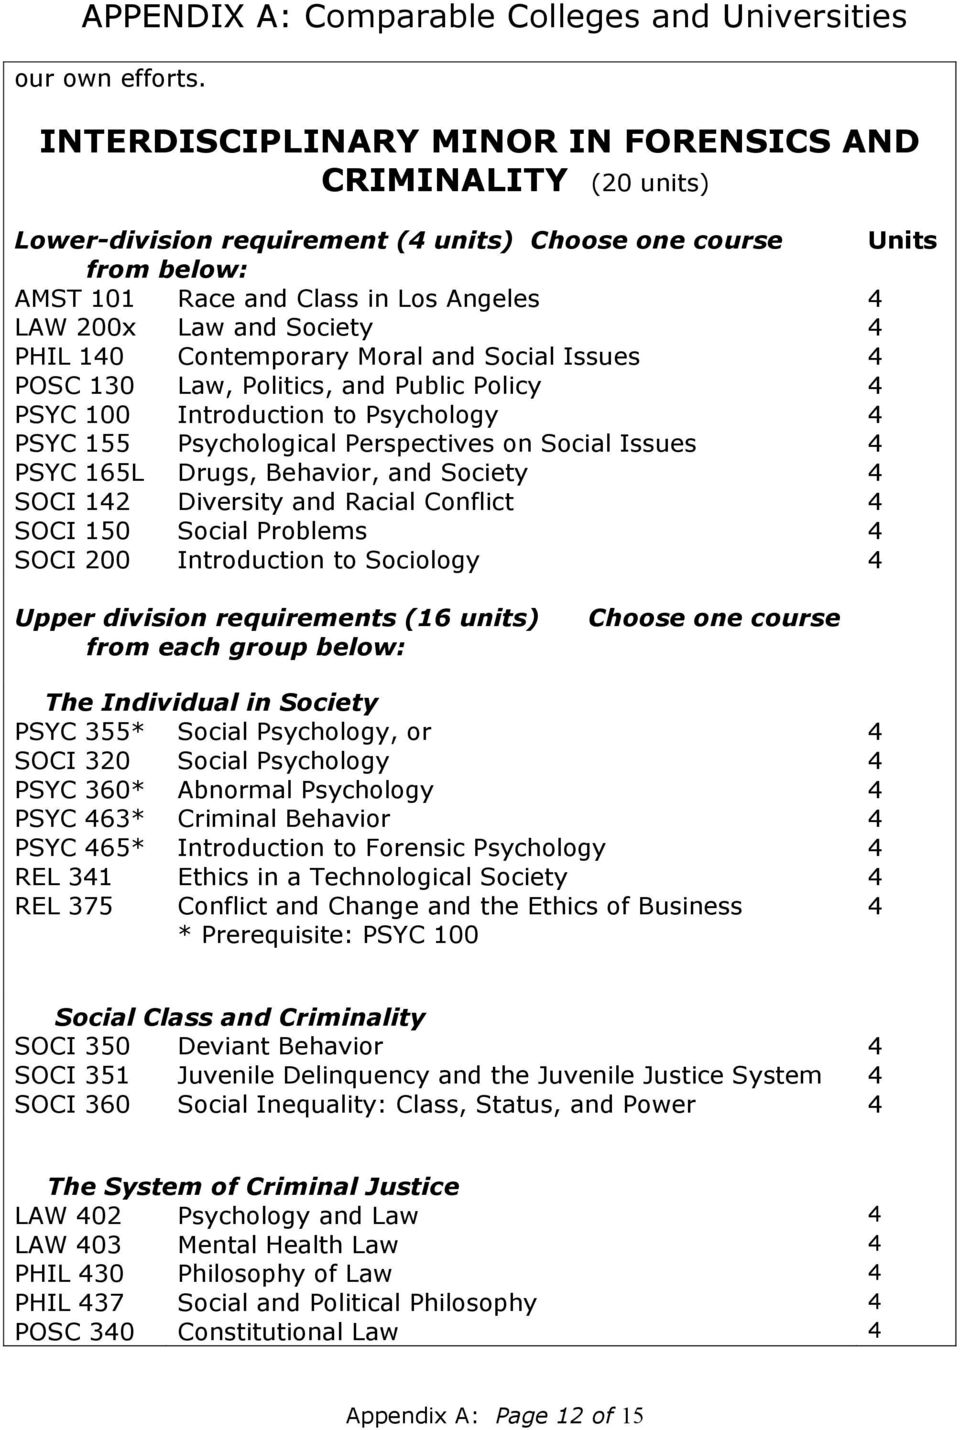 Society 4 PHIL 140 Contemporary Moral and Social Issues 4 POSC 130 Law, Politics, and Public Policy 4 PSYC 100 Introduction to Psychology 4 PSYC 155 Psychological Perspectives on Social Issues 4 PSYC